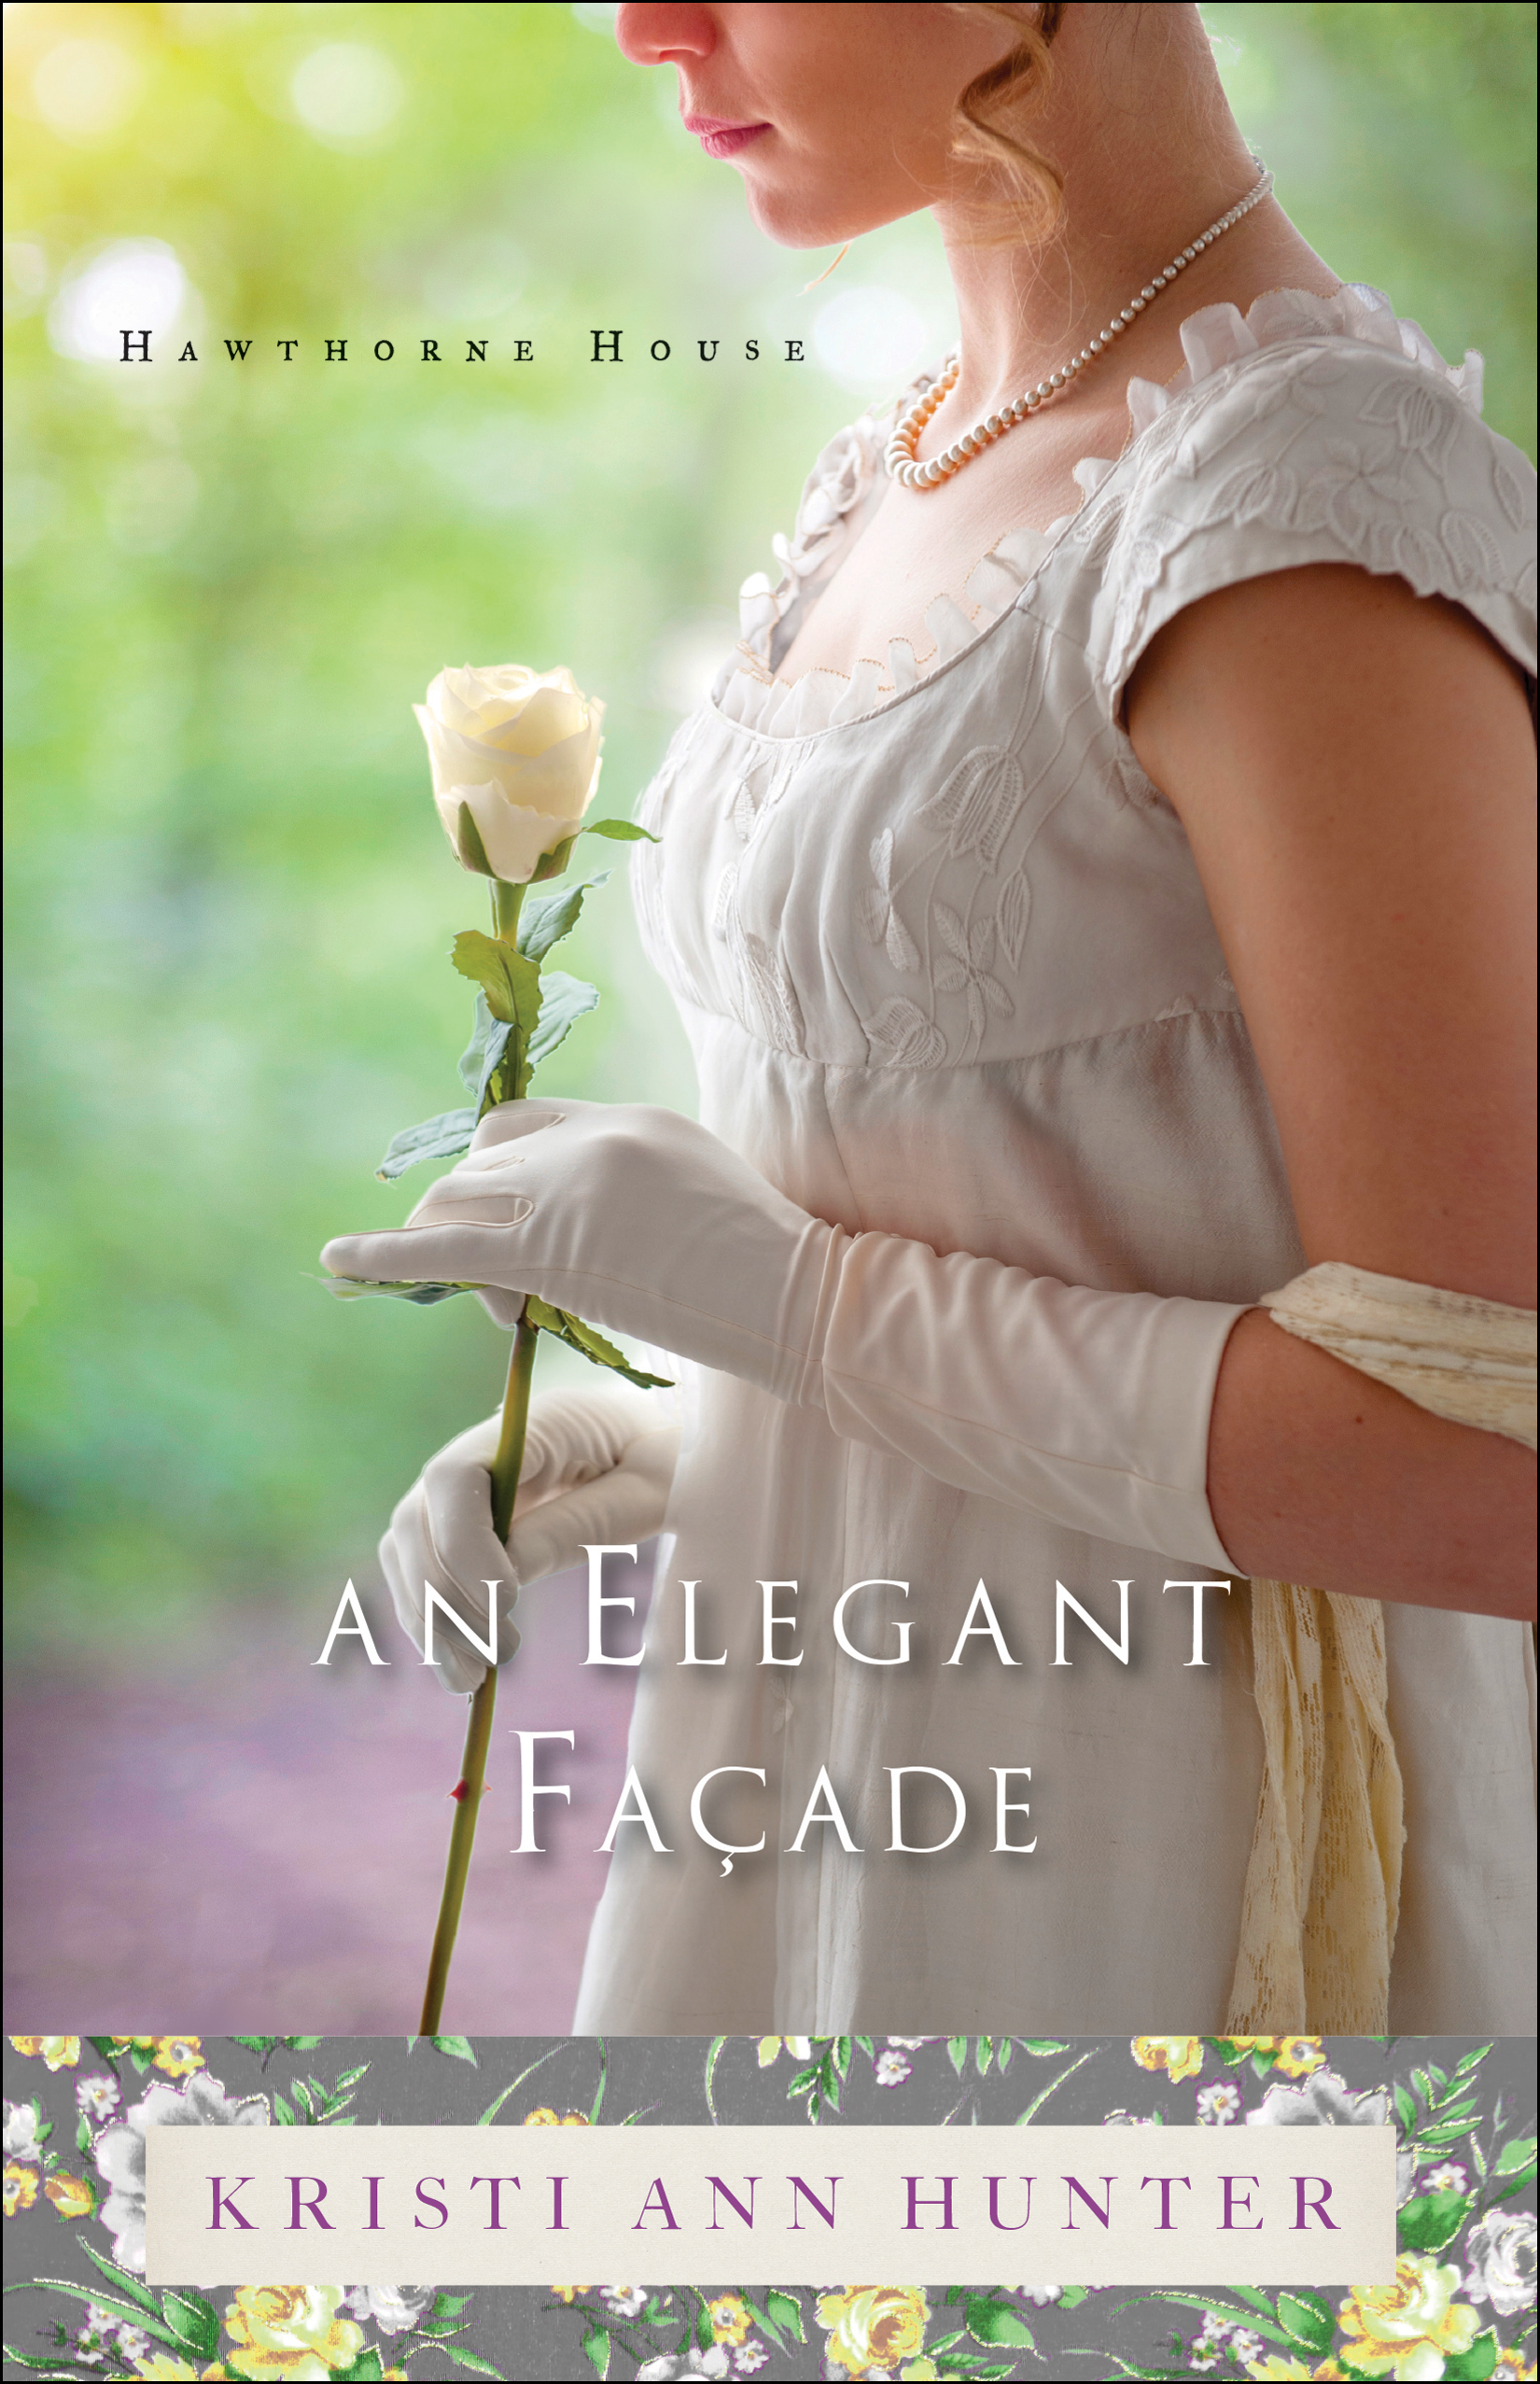 book review of An Elegant Facade by Kristi Ann Hunter (Bethany House) by papertapepins